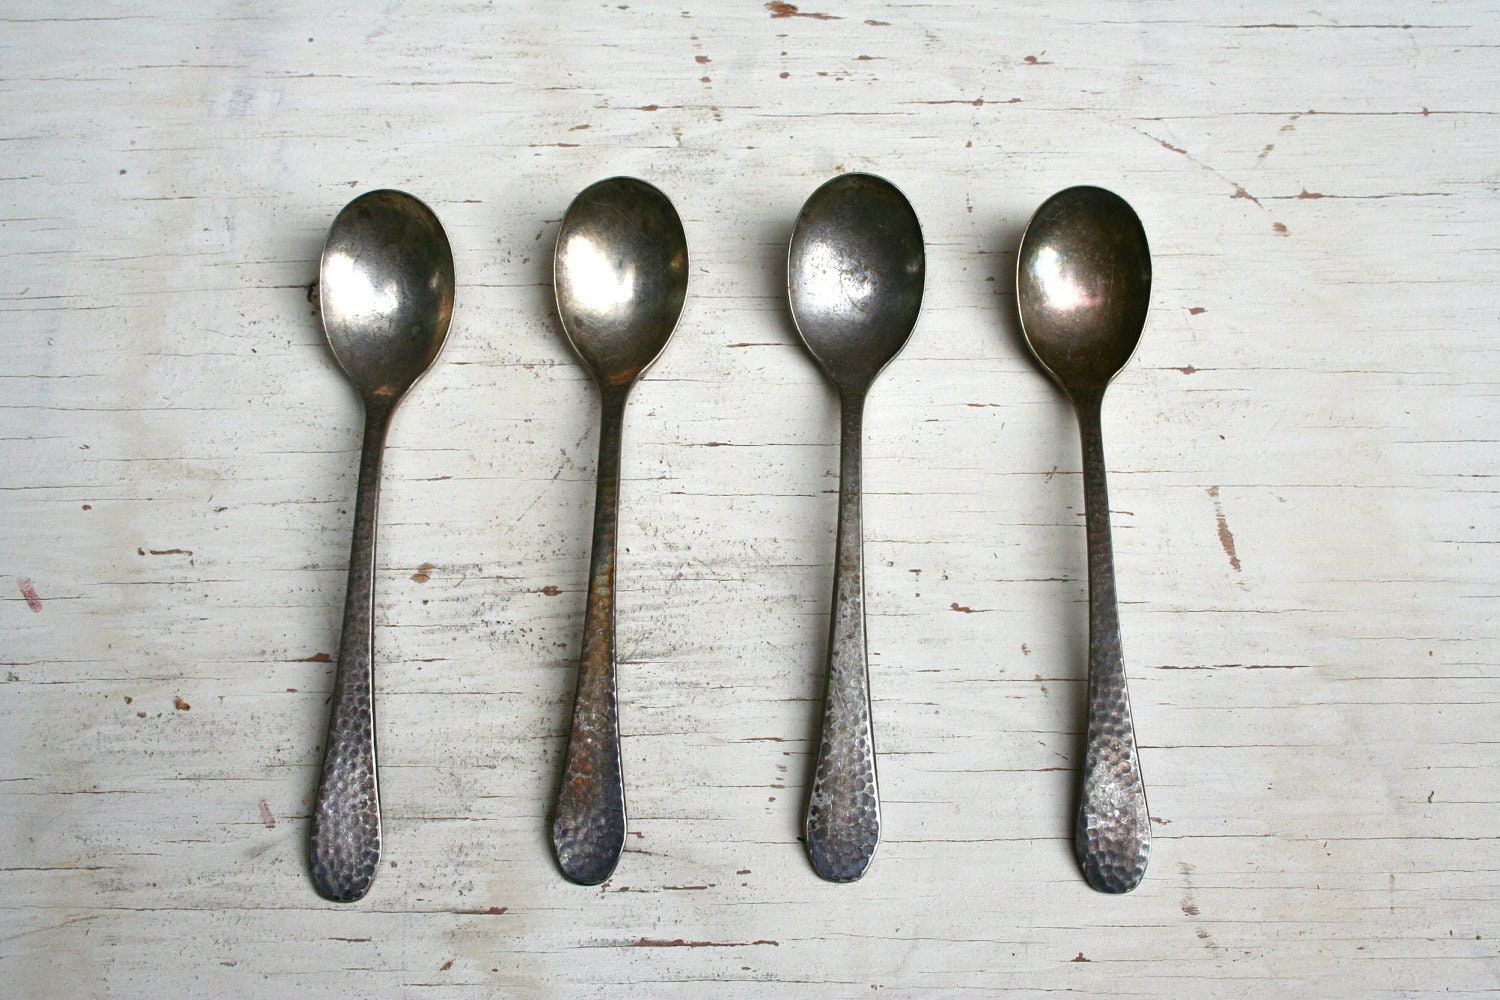 Four Antique Spoons - LoveliesShop